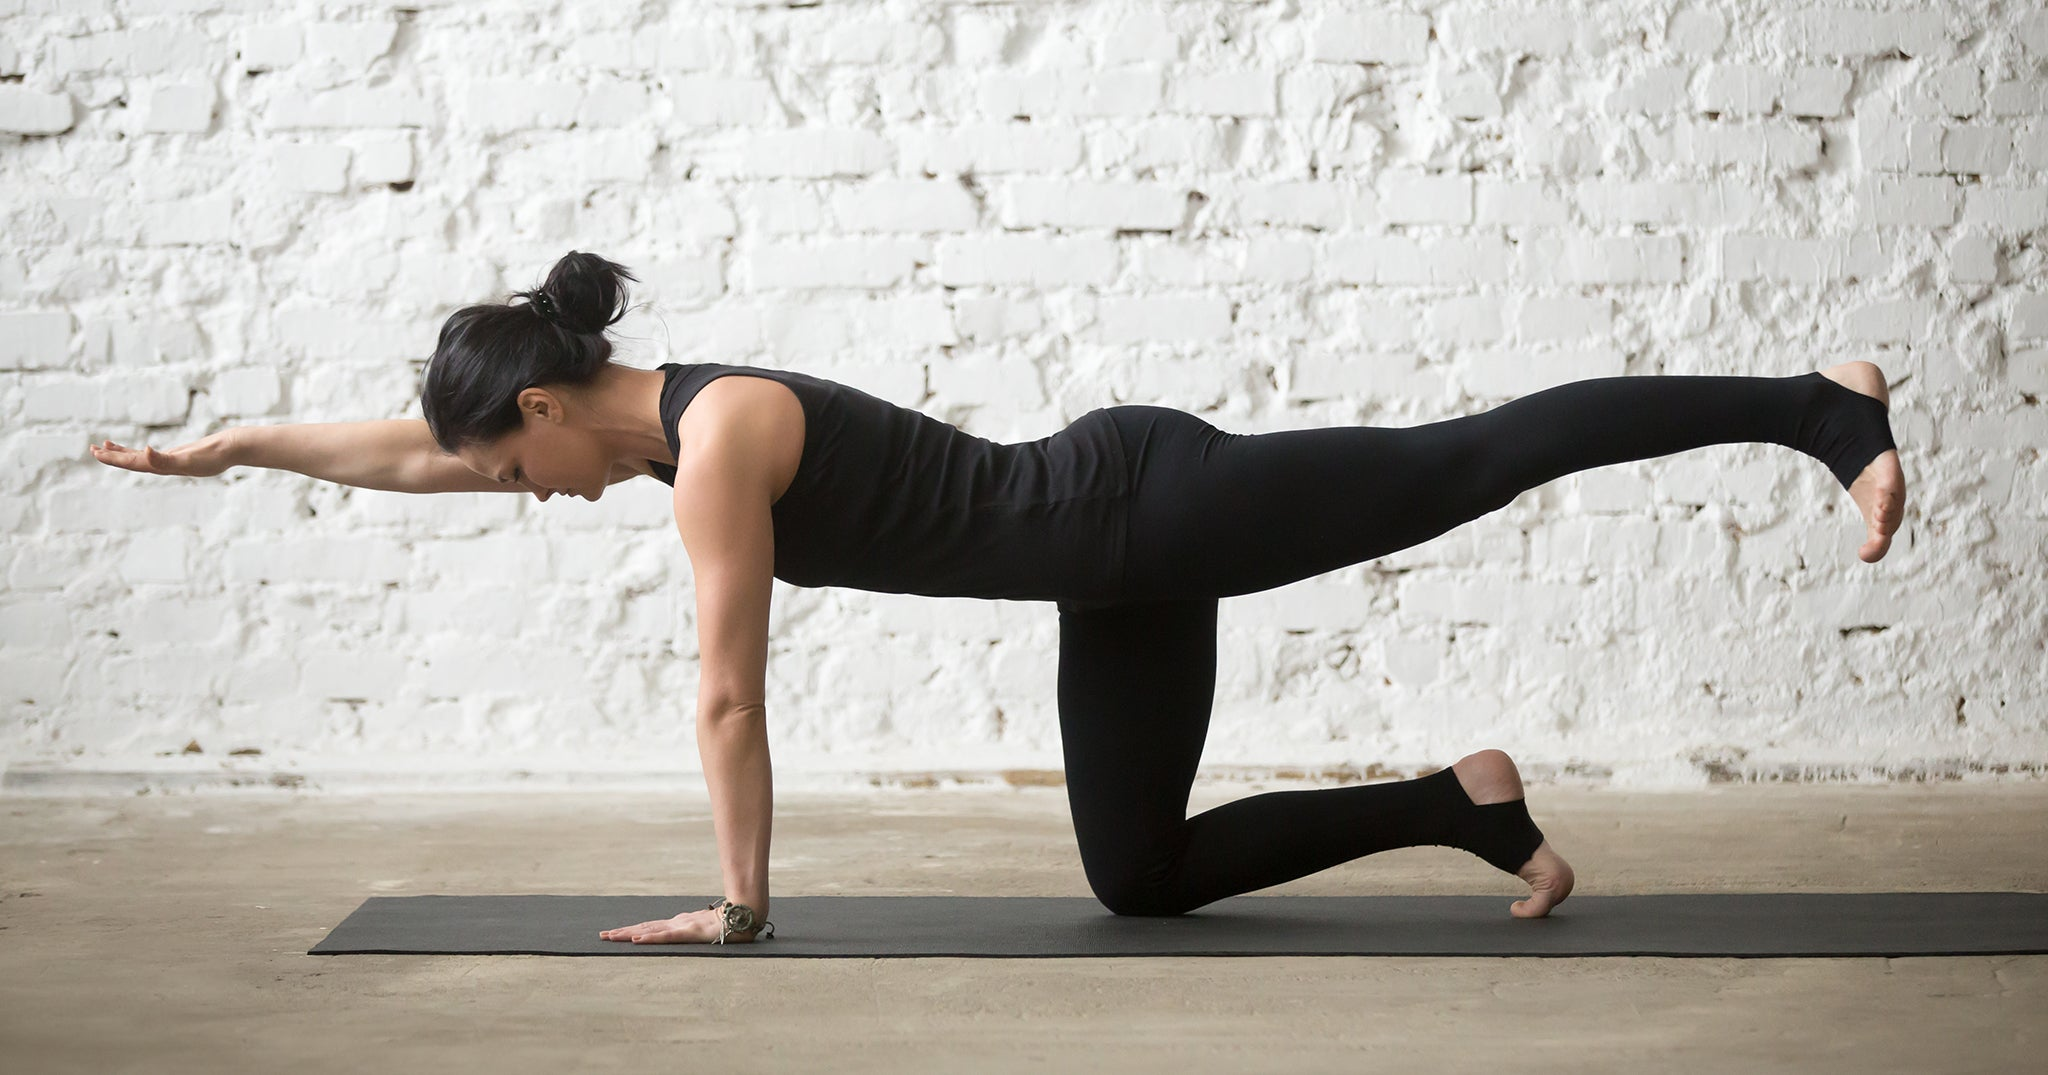 a woman is stretching